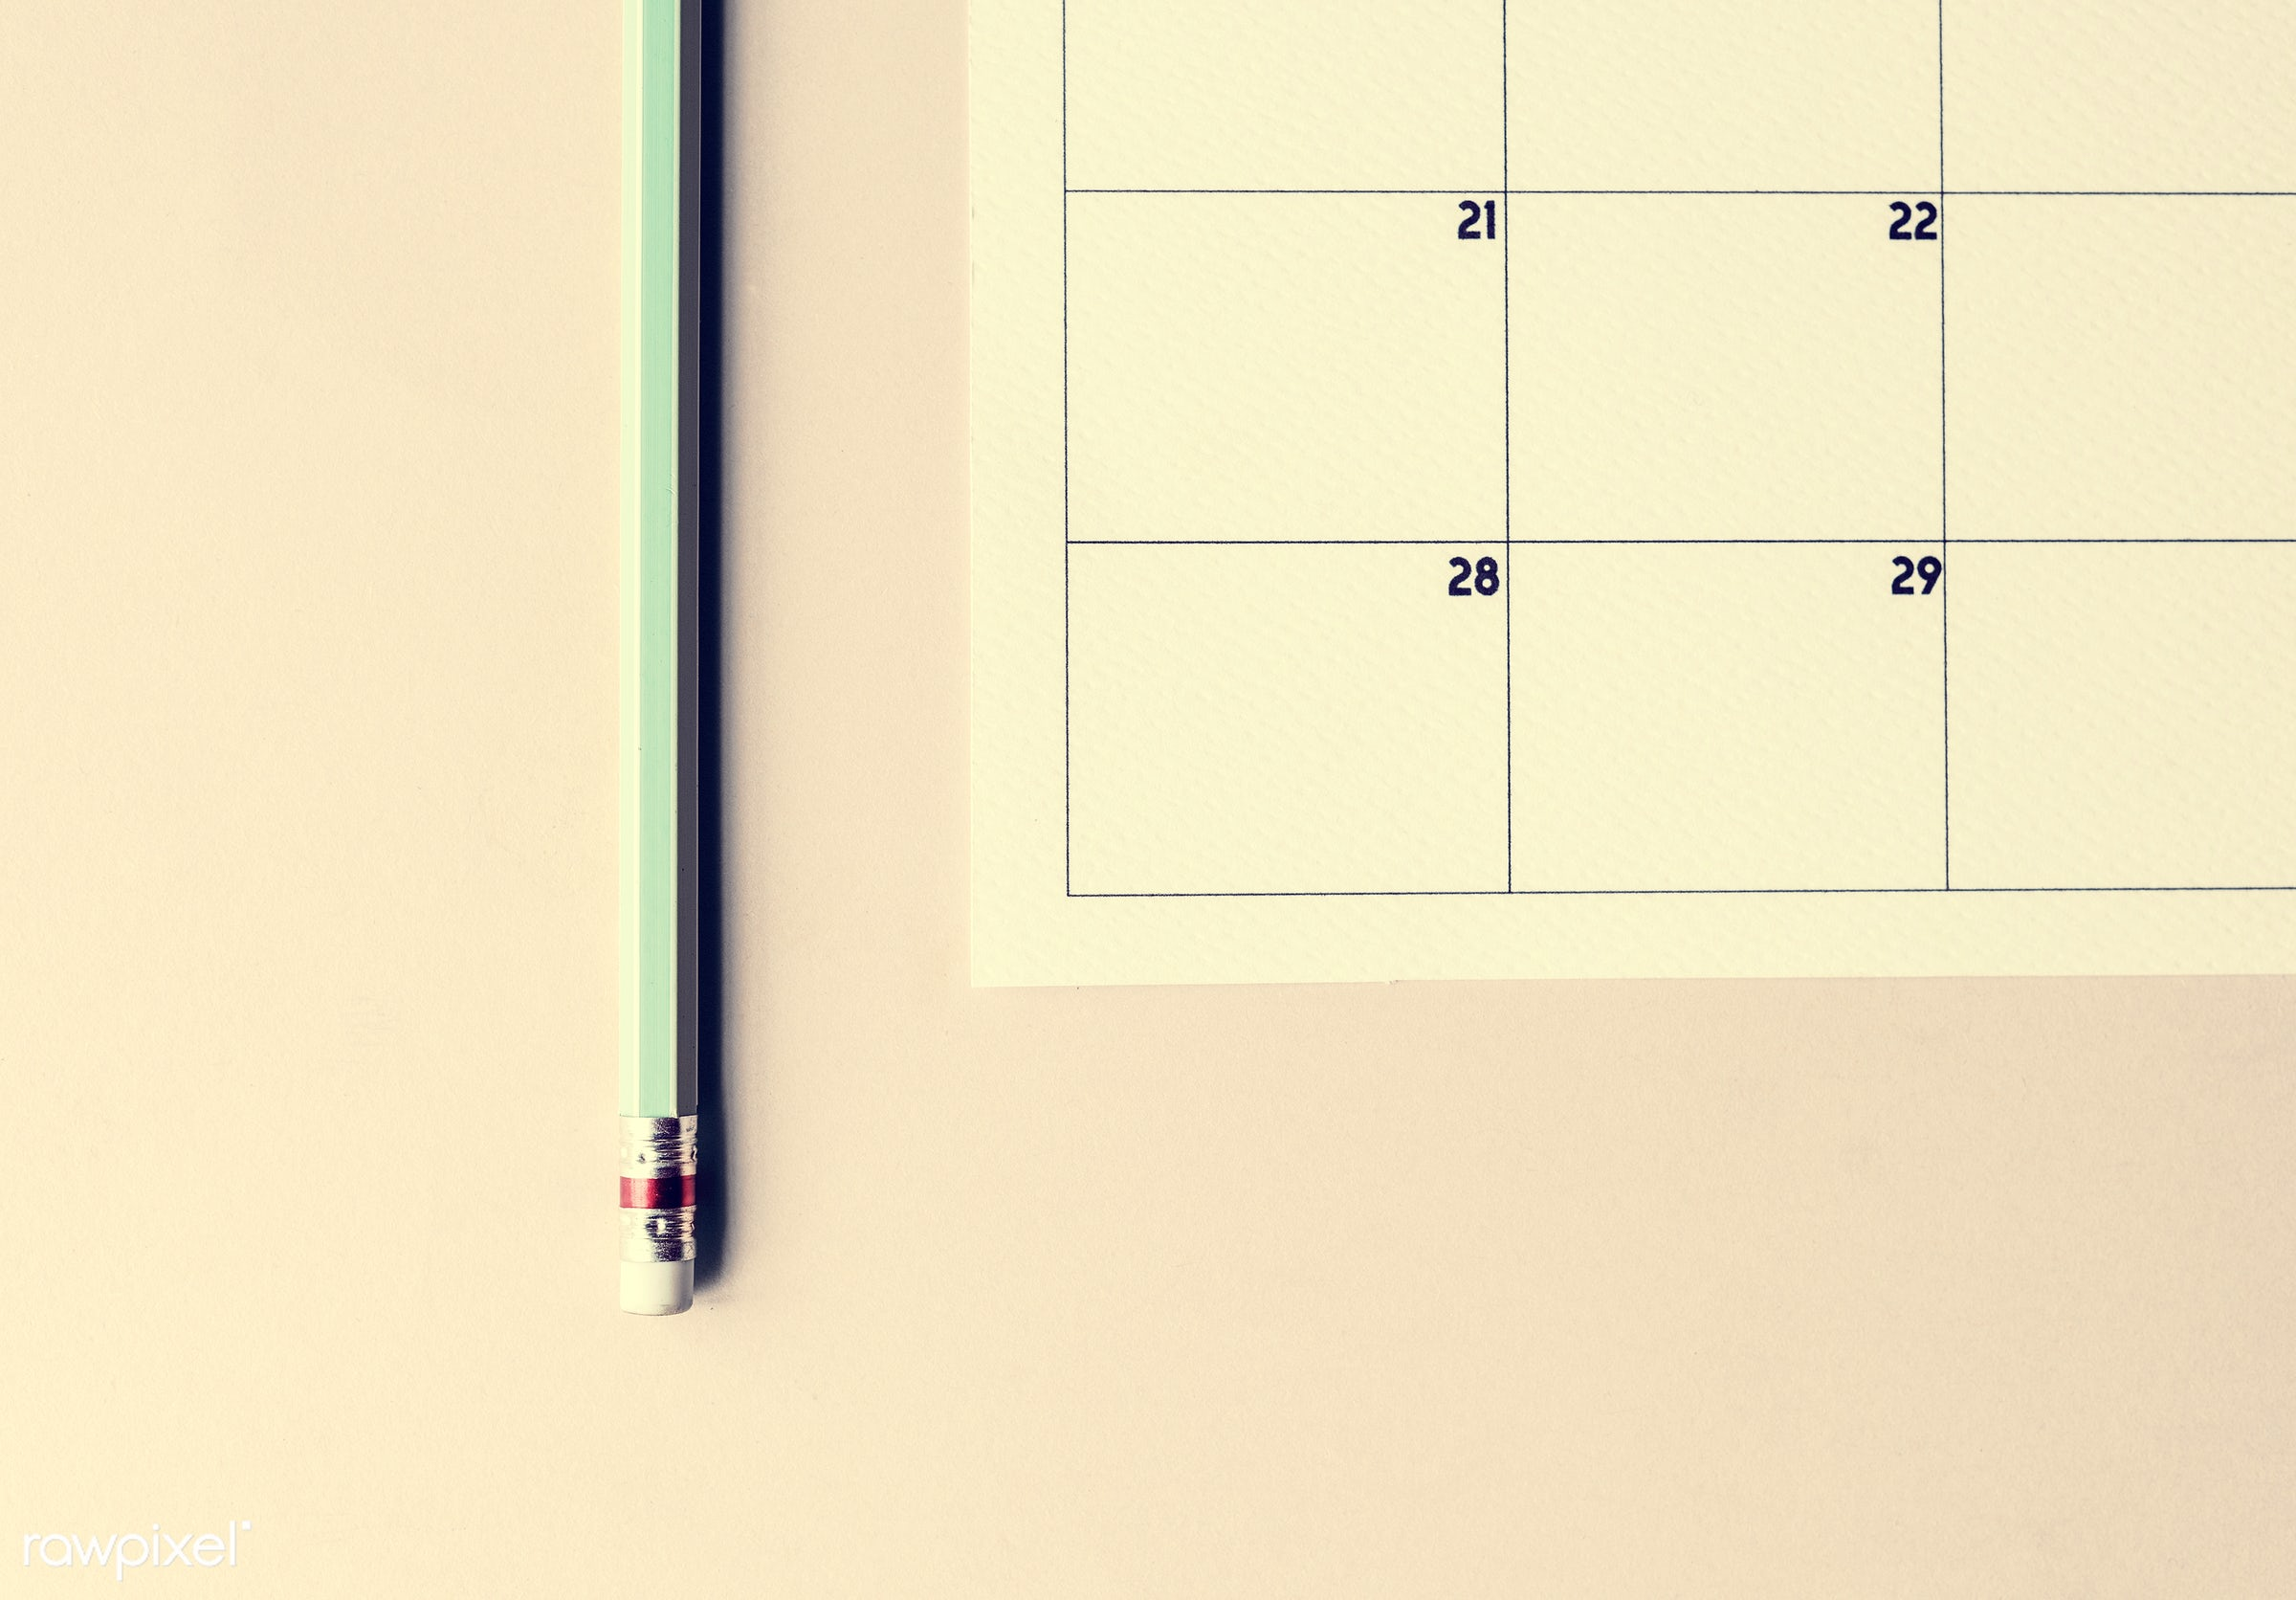 appointment, calendar, date, day, design, equipment, event, management, month, monthly, note, object, organizer, page, paper...